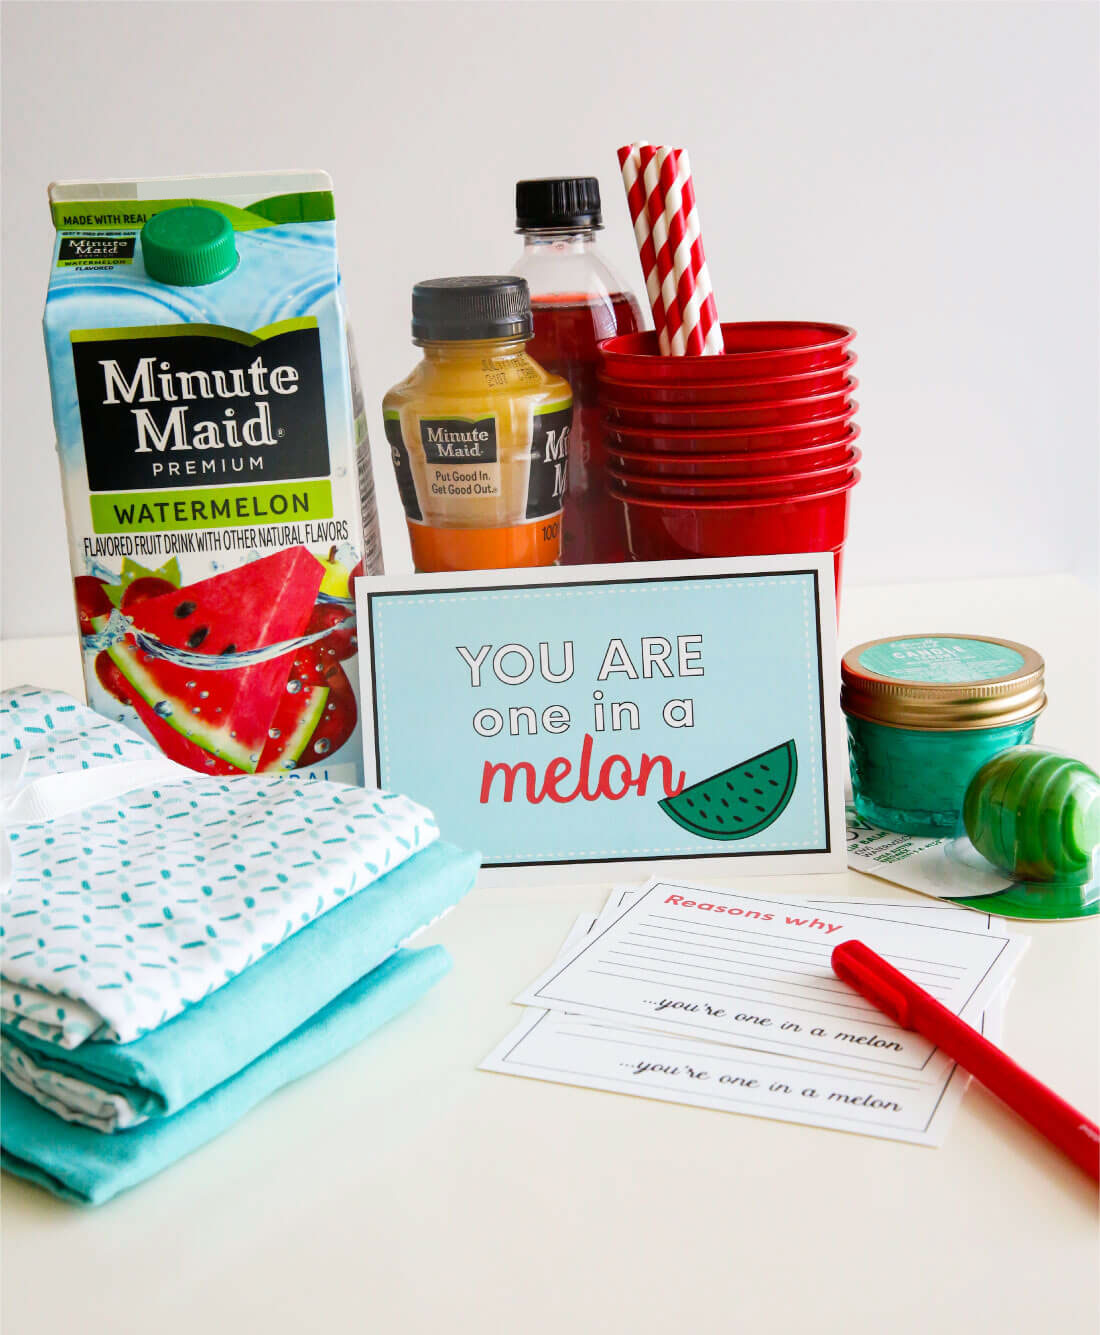 """Make a """"Reverse"""" Care Package with the help of Minute Maid. Let someone know that they are one in a """"melon!"""" Cute printables included. from www.thirtyhandmadedays.com"""